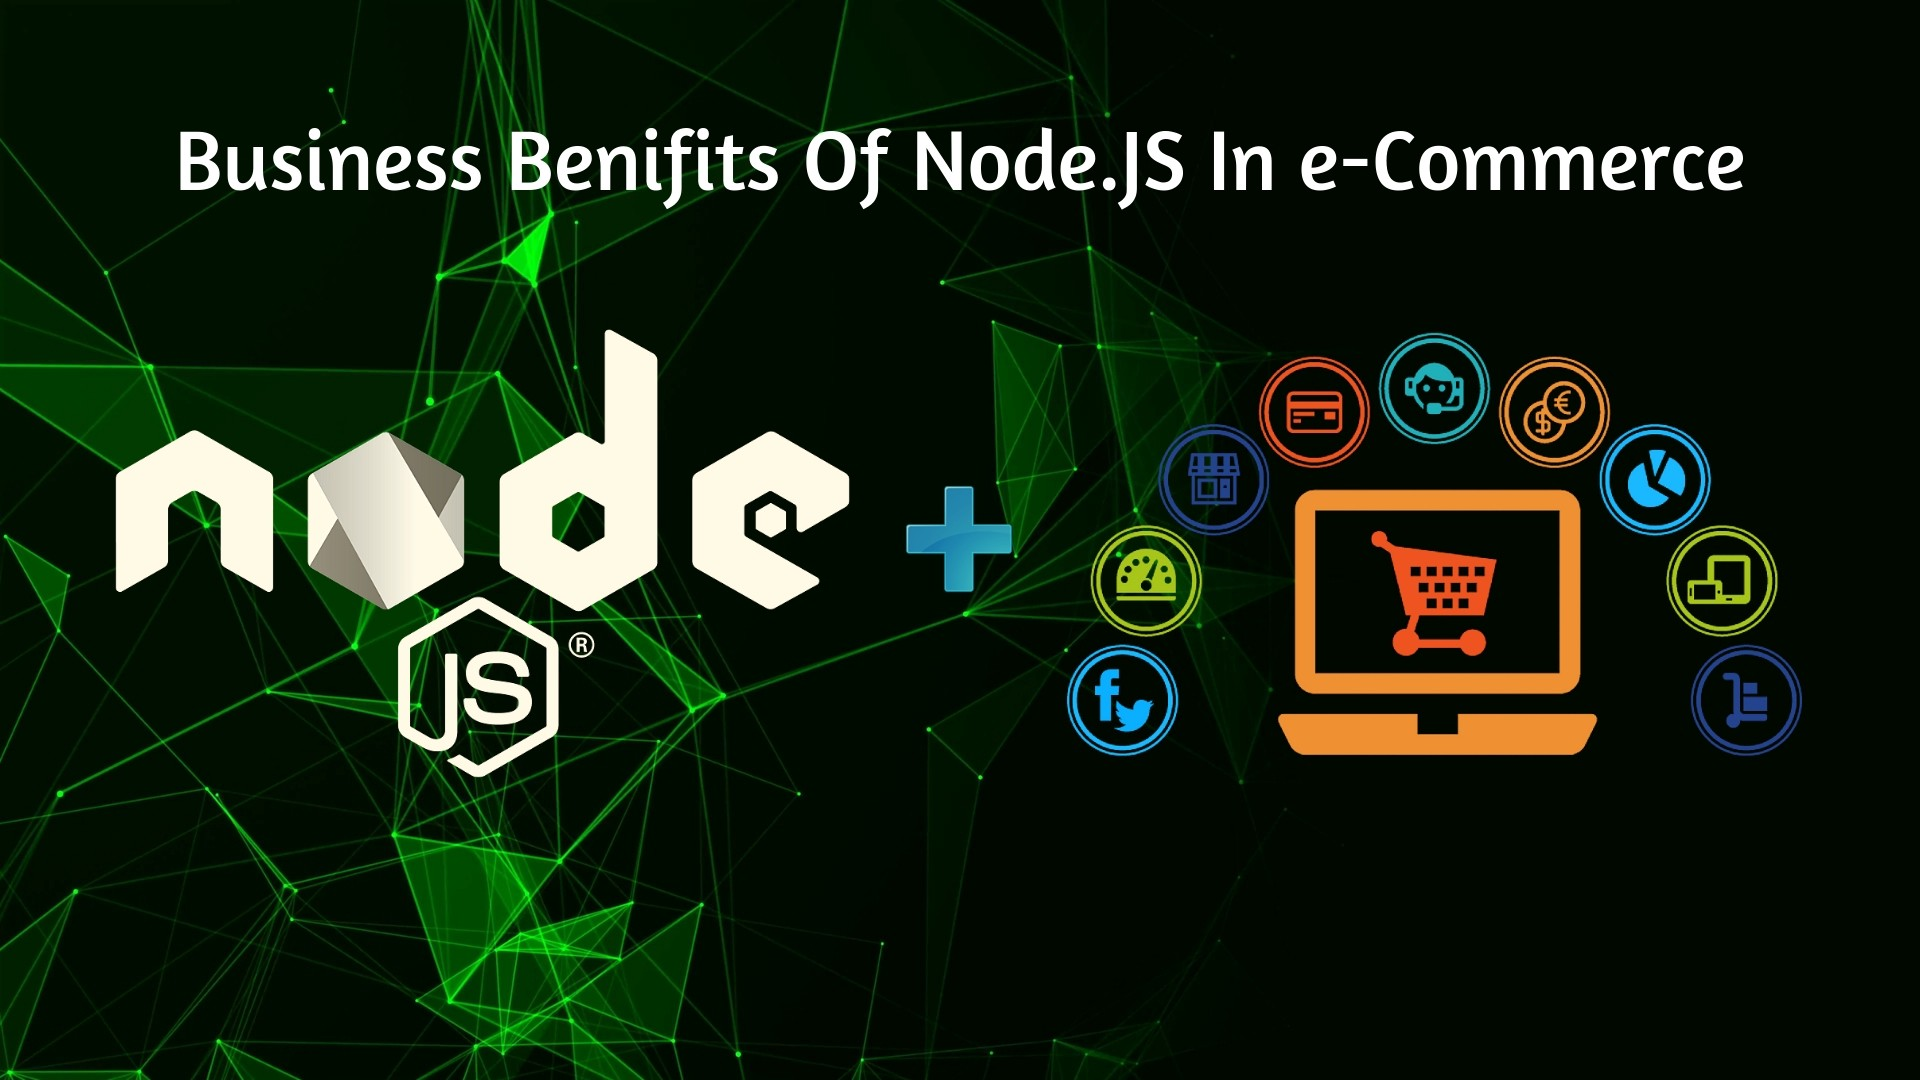 /benefits-of-implementing-node-js-in-e-commerce-industries-for-2019-f238689eb1a1 feature image